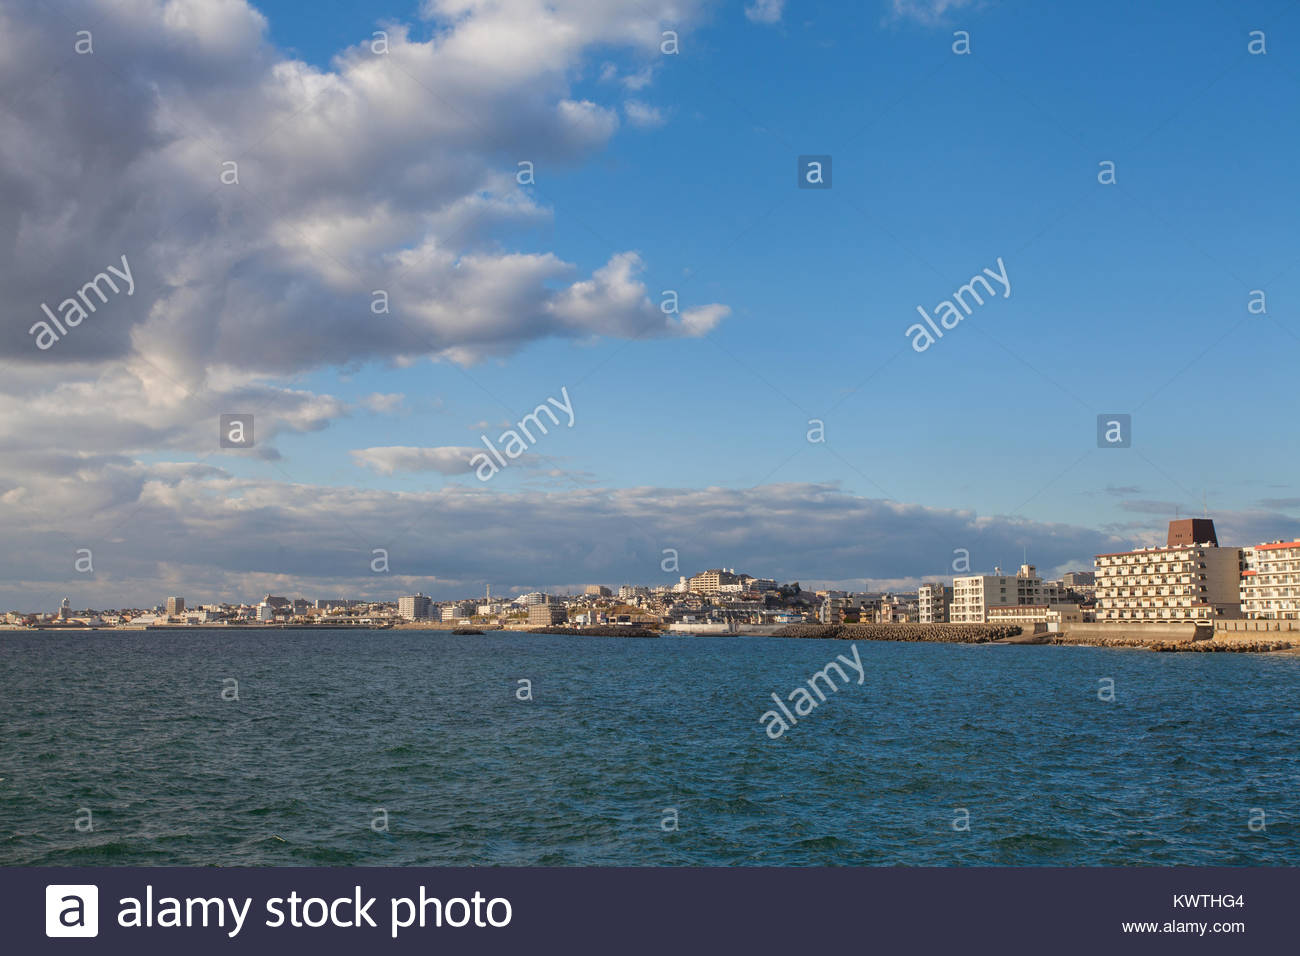 View of Kobe city from under Akashi Kaikyo bridge - Stock Image